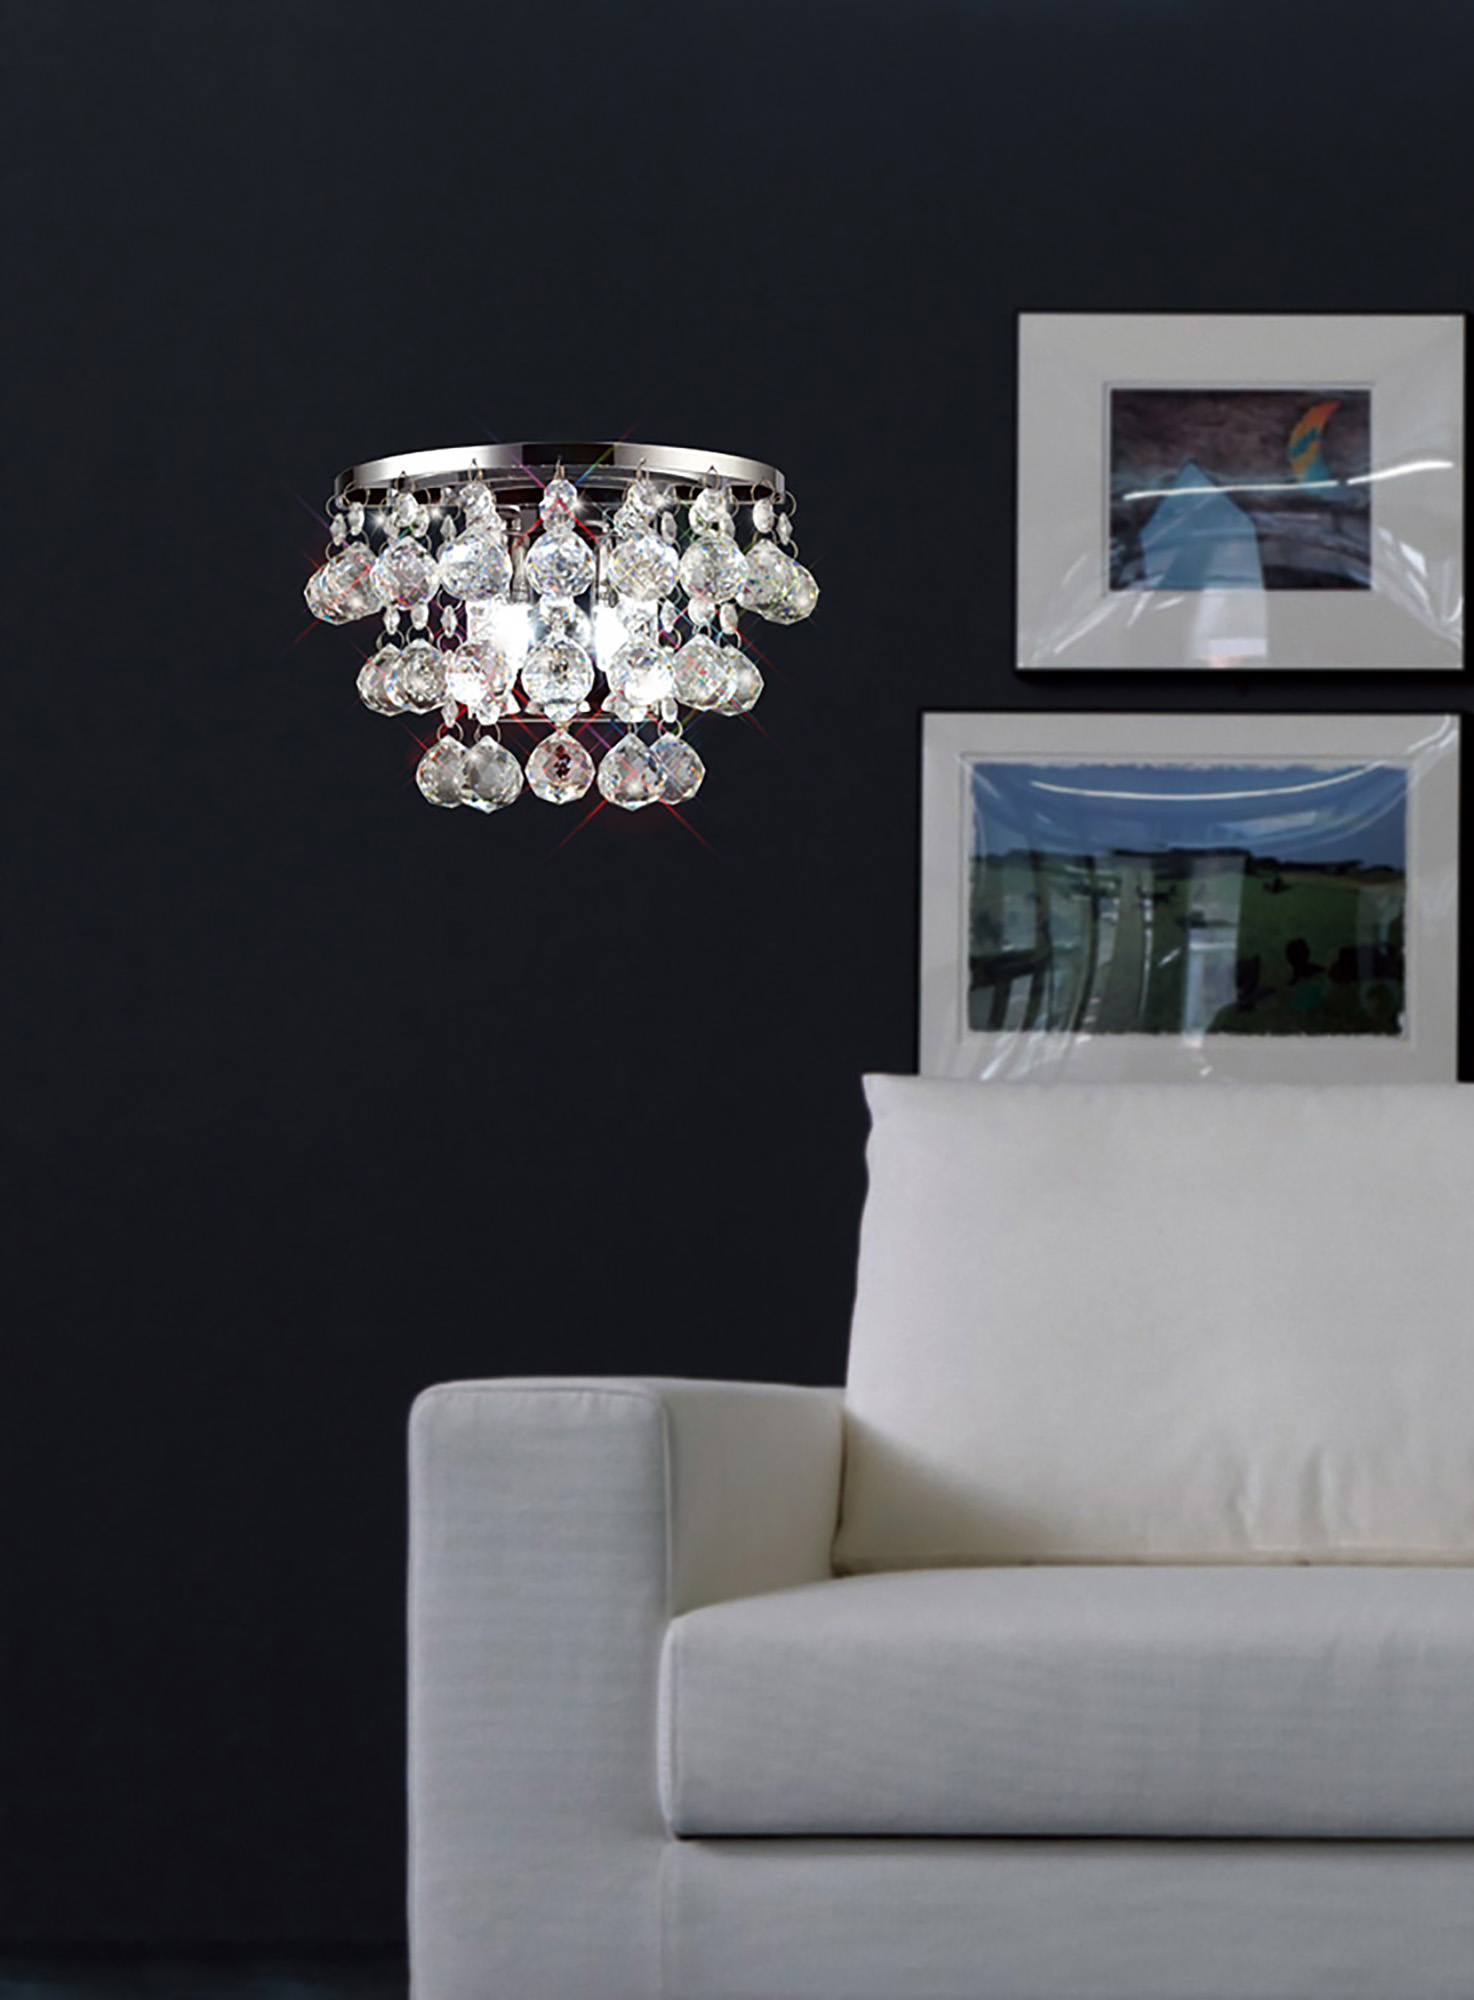 Tara Crystal Table Lamps Diyas Contemporary Crystal Table Lamps